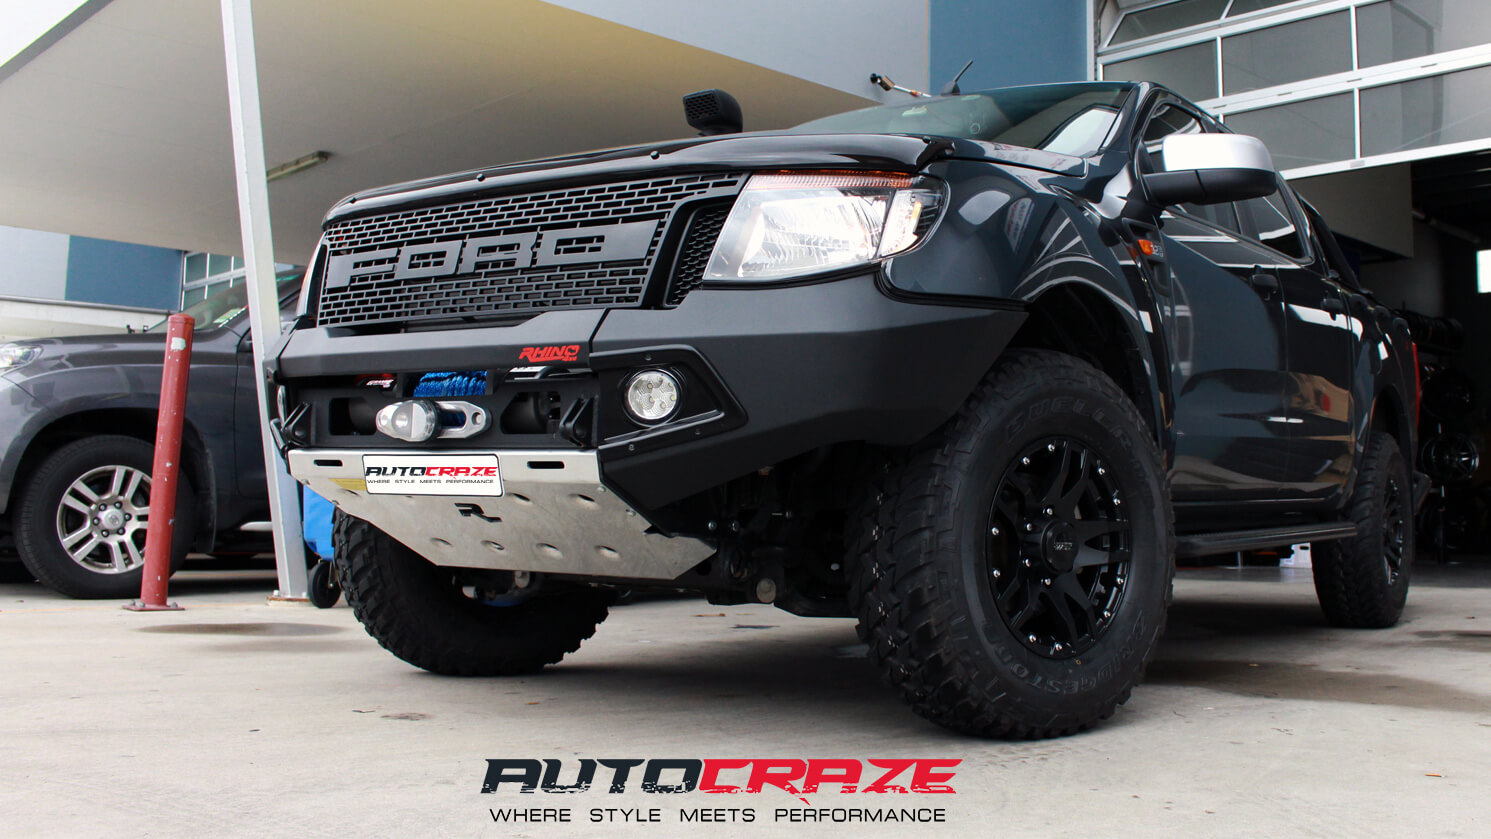 Ford Ranger Mag Wheels Ford Ranger Aftermarket Rims And Tires Packages